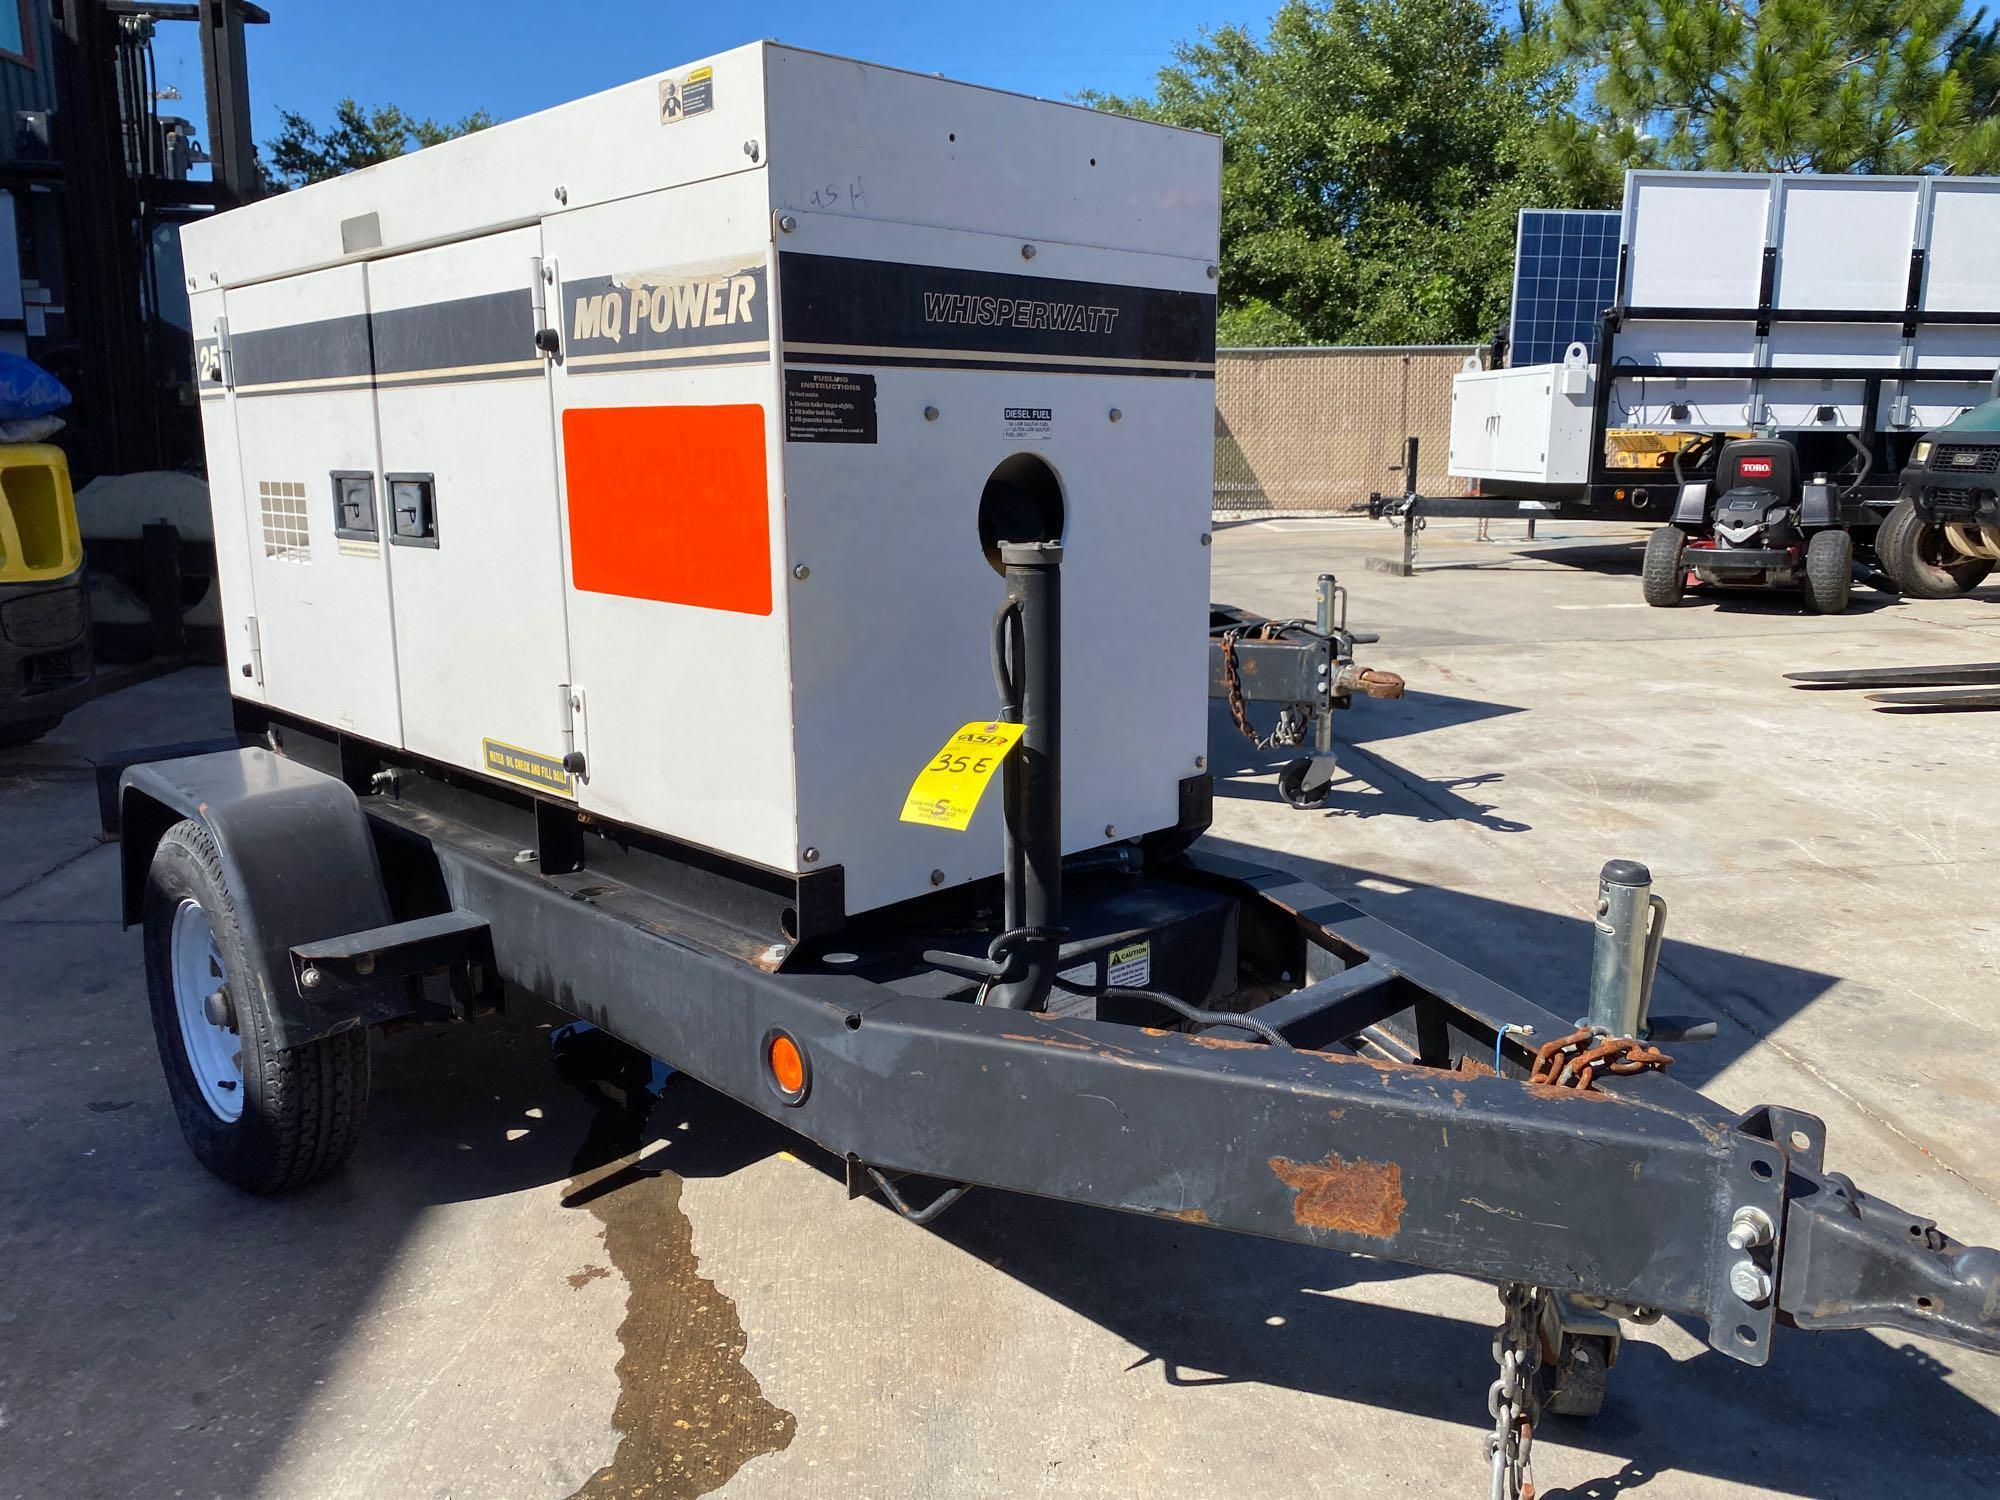 2011/2012 WHISPERWATT MQ POWER DIESEL GENERATOR, TRAILER MOUNTED, 20KW, 25KVA, RUNS AND OPERATES - Image 12 of 19